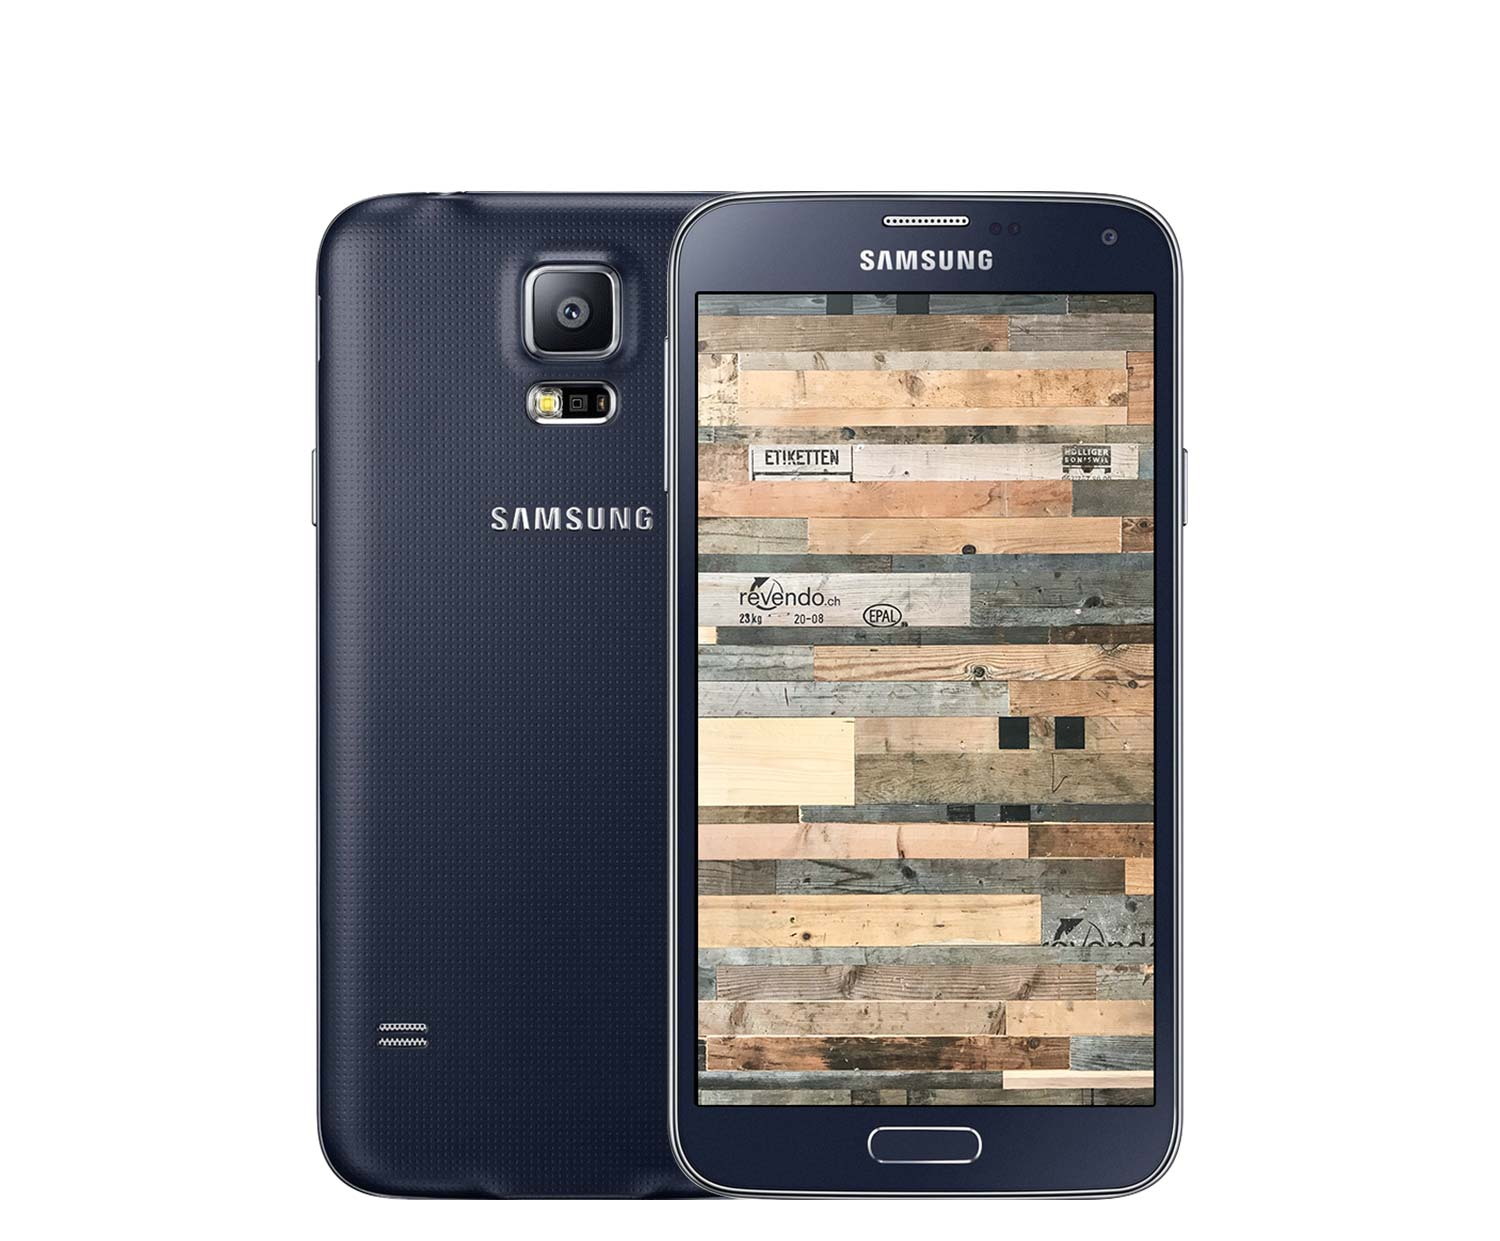 samsung galaxy s5 neo 16 gb black. Black Bedroom Furniture Sets. Home Design Ideas